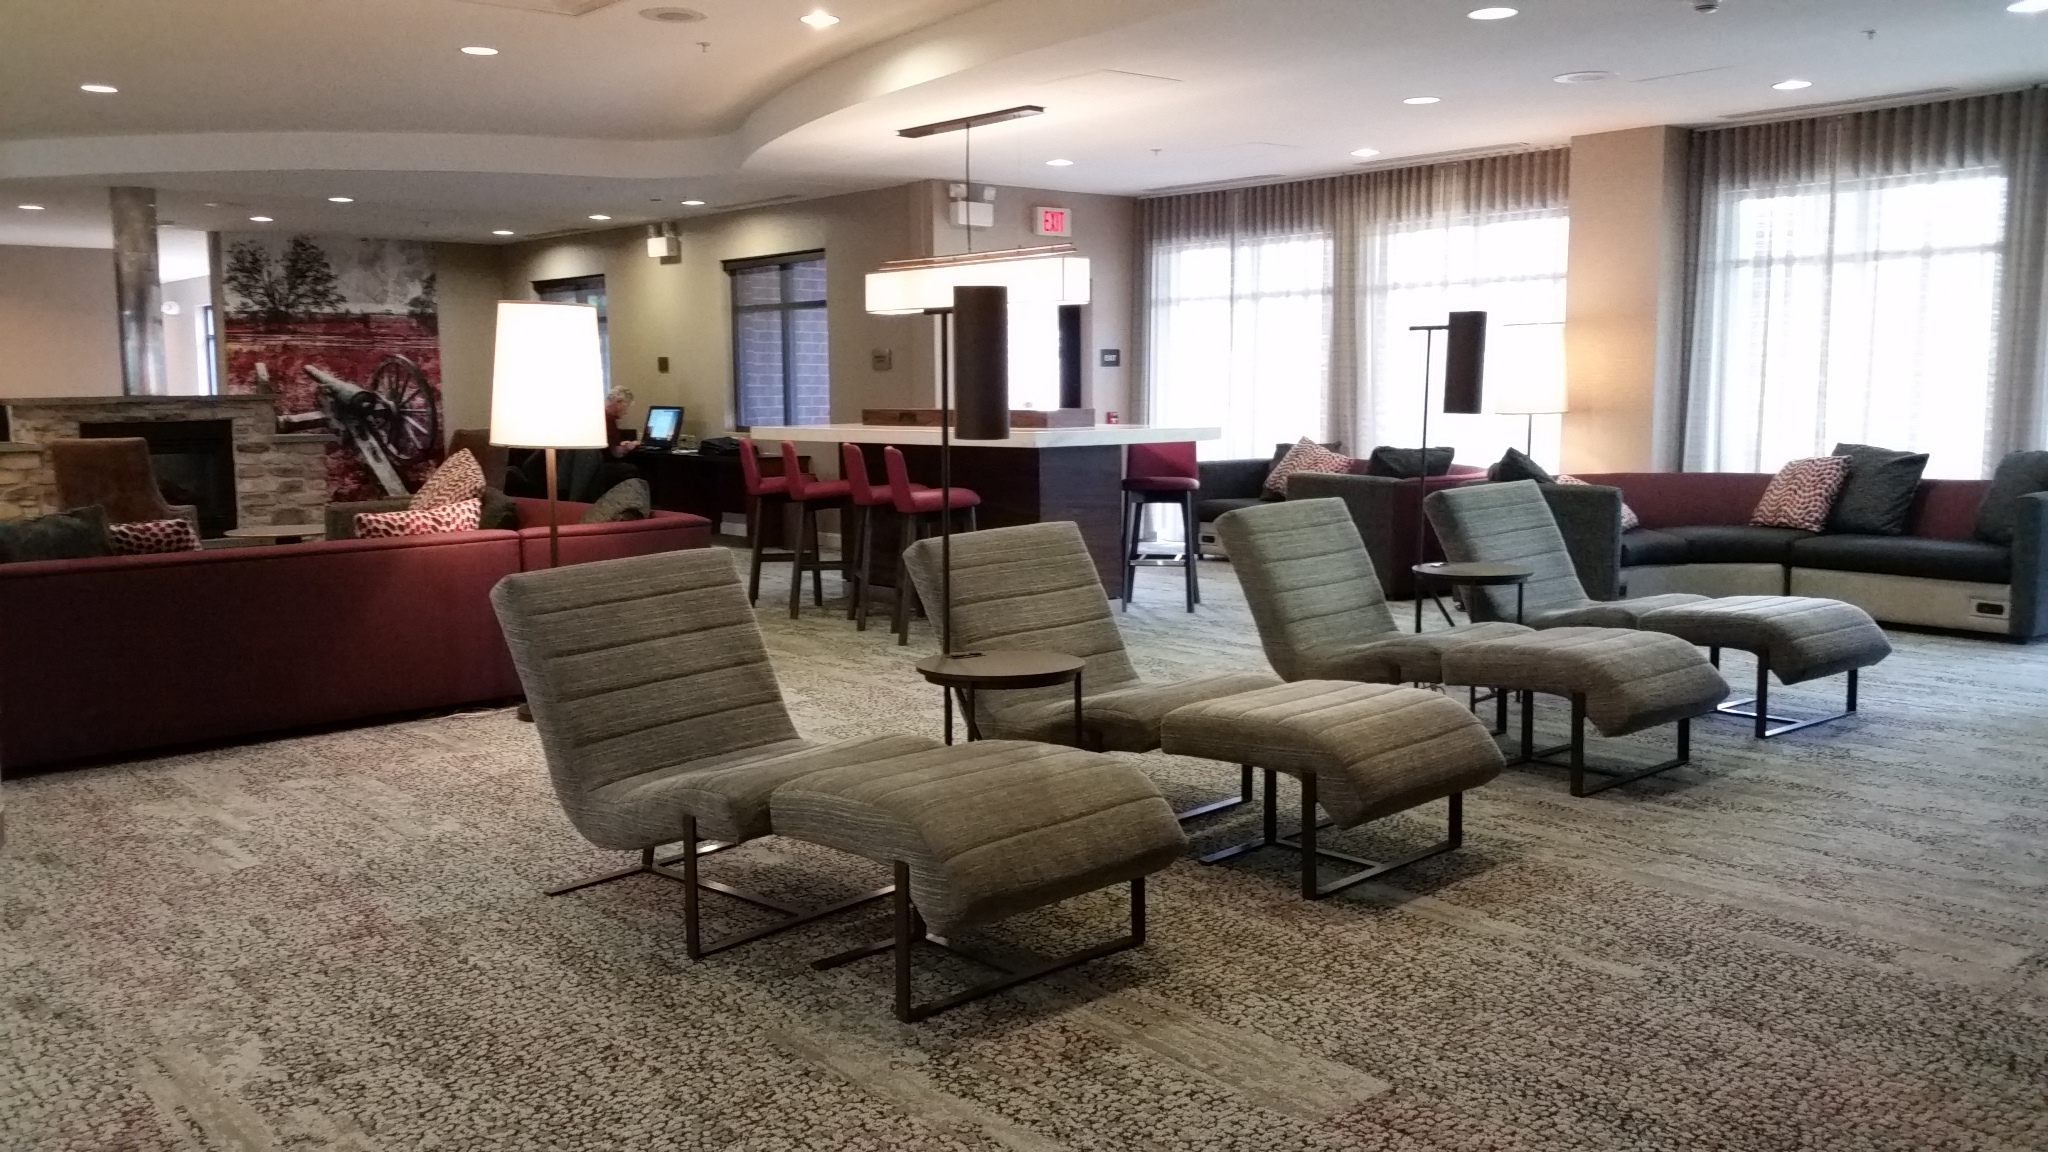 Chaise longue chairs in the lobby of the Courtyard by Marriott Gettysburg